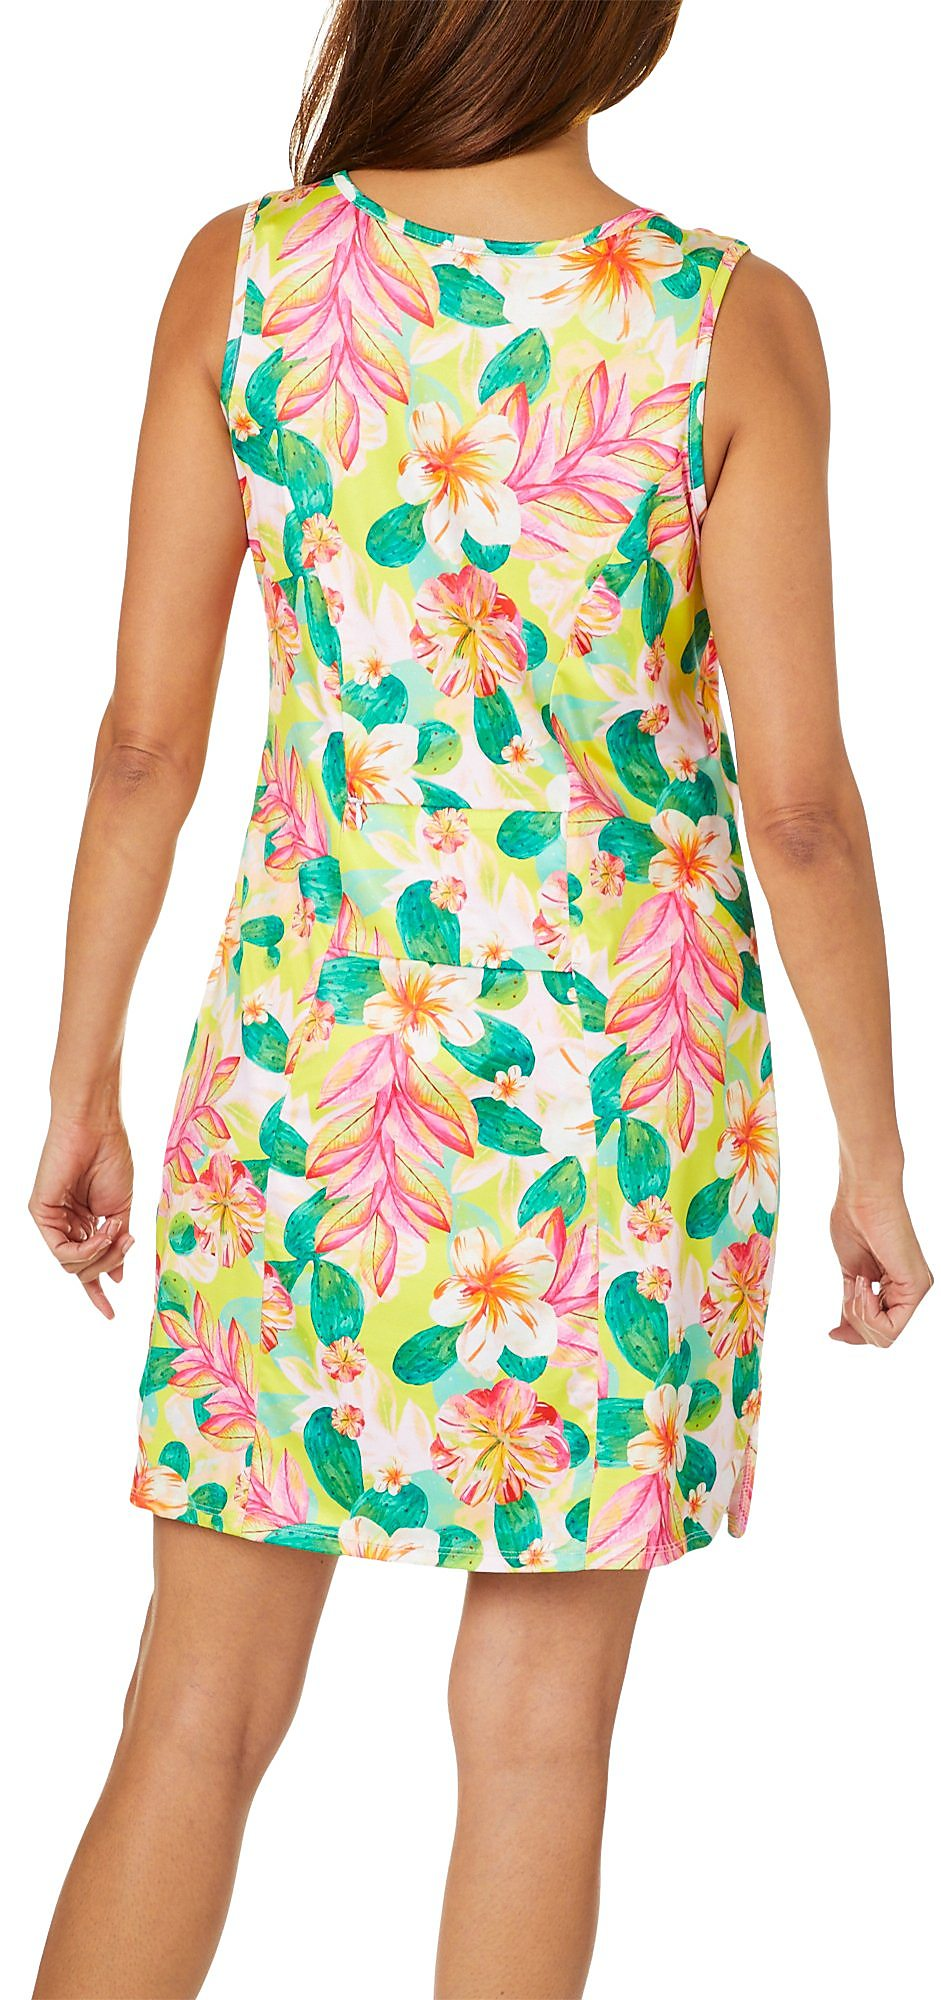 854ddb5b45 Paradise Bay Womens Cactus Flower Dress Swim Cover-Up | eBay